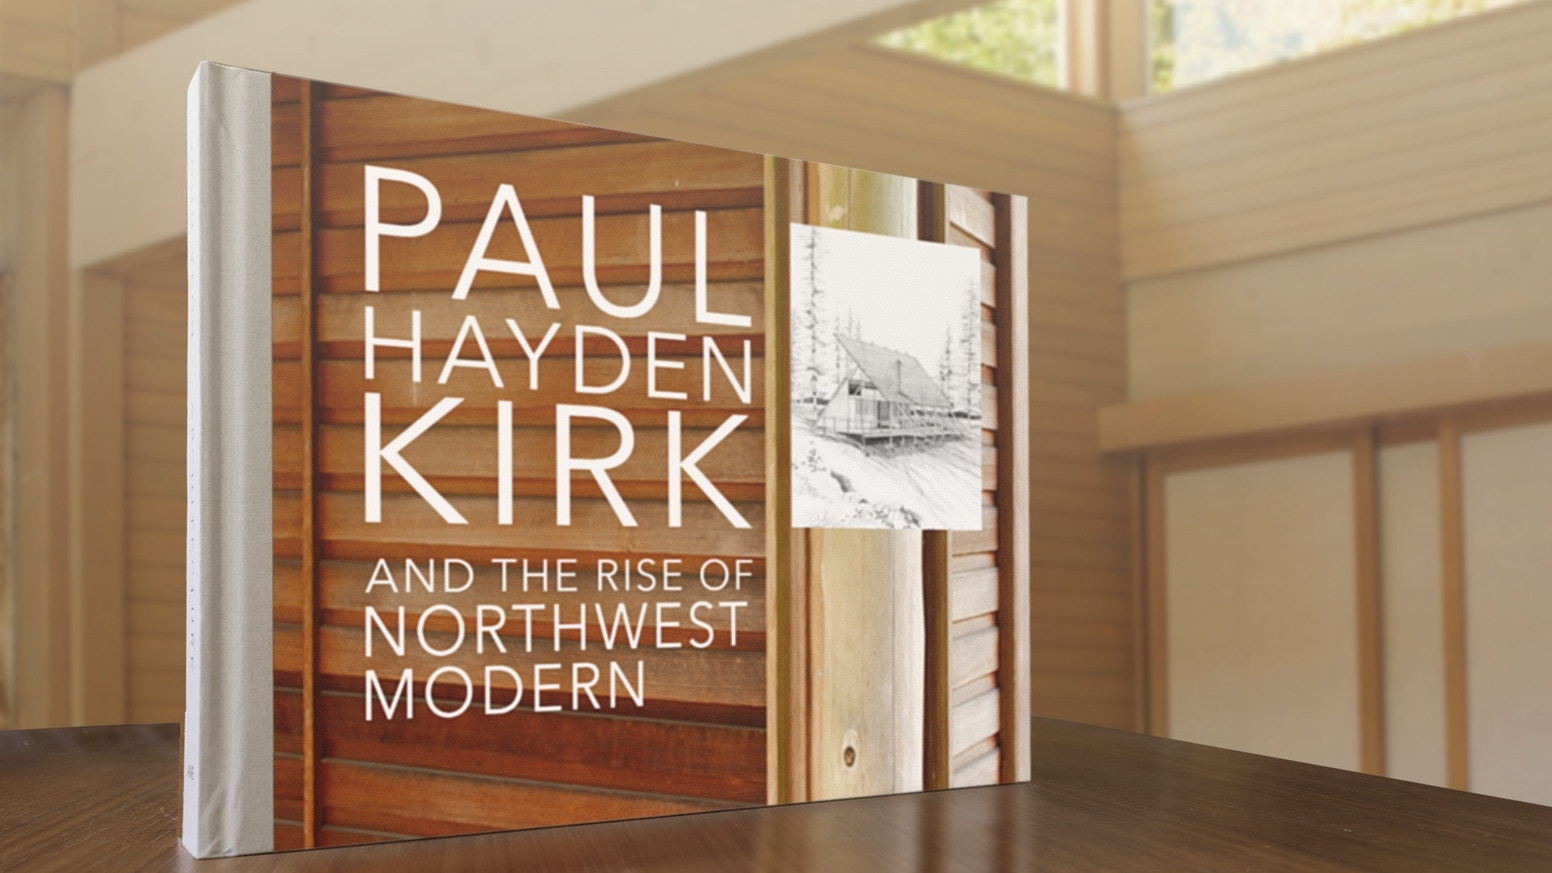 An illustrated book on the mid-century architect, Paul Hayden Kirk. Pre-order the first book to tell the story of modern design in the Pacific Northwest!